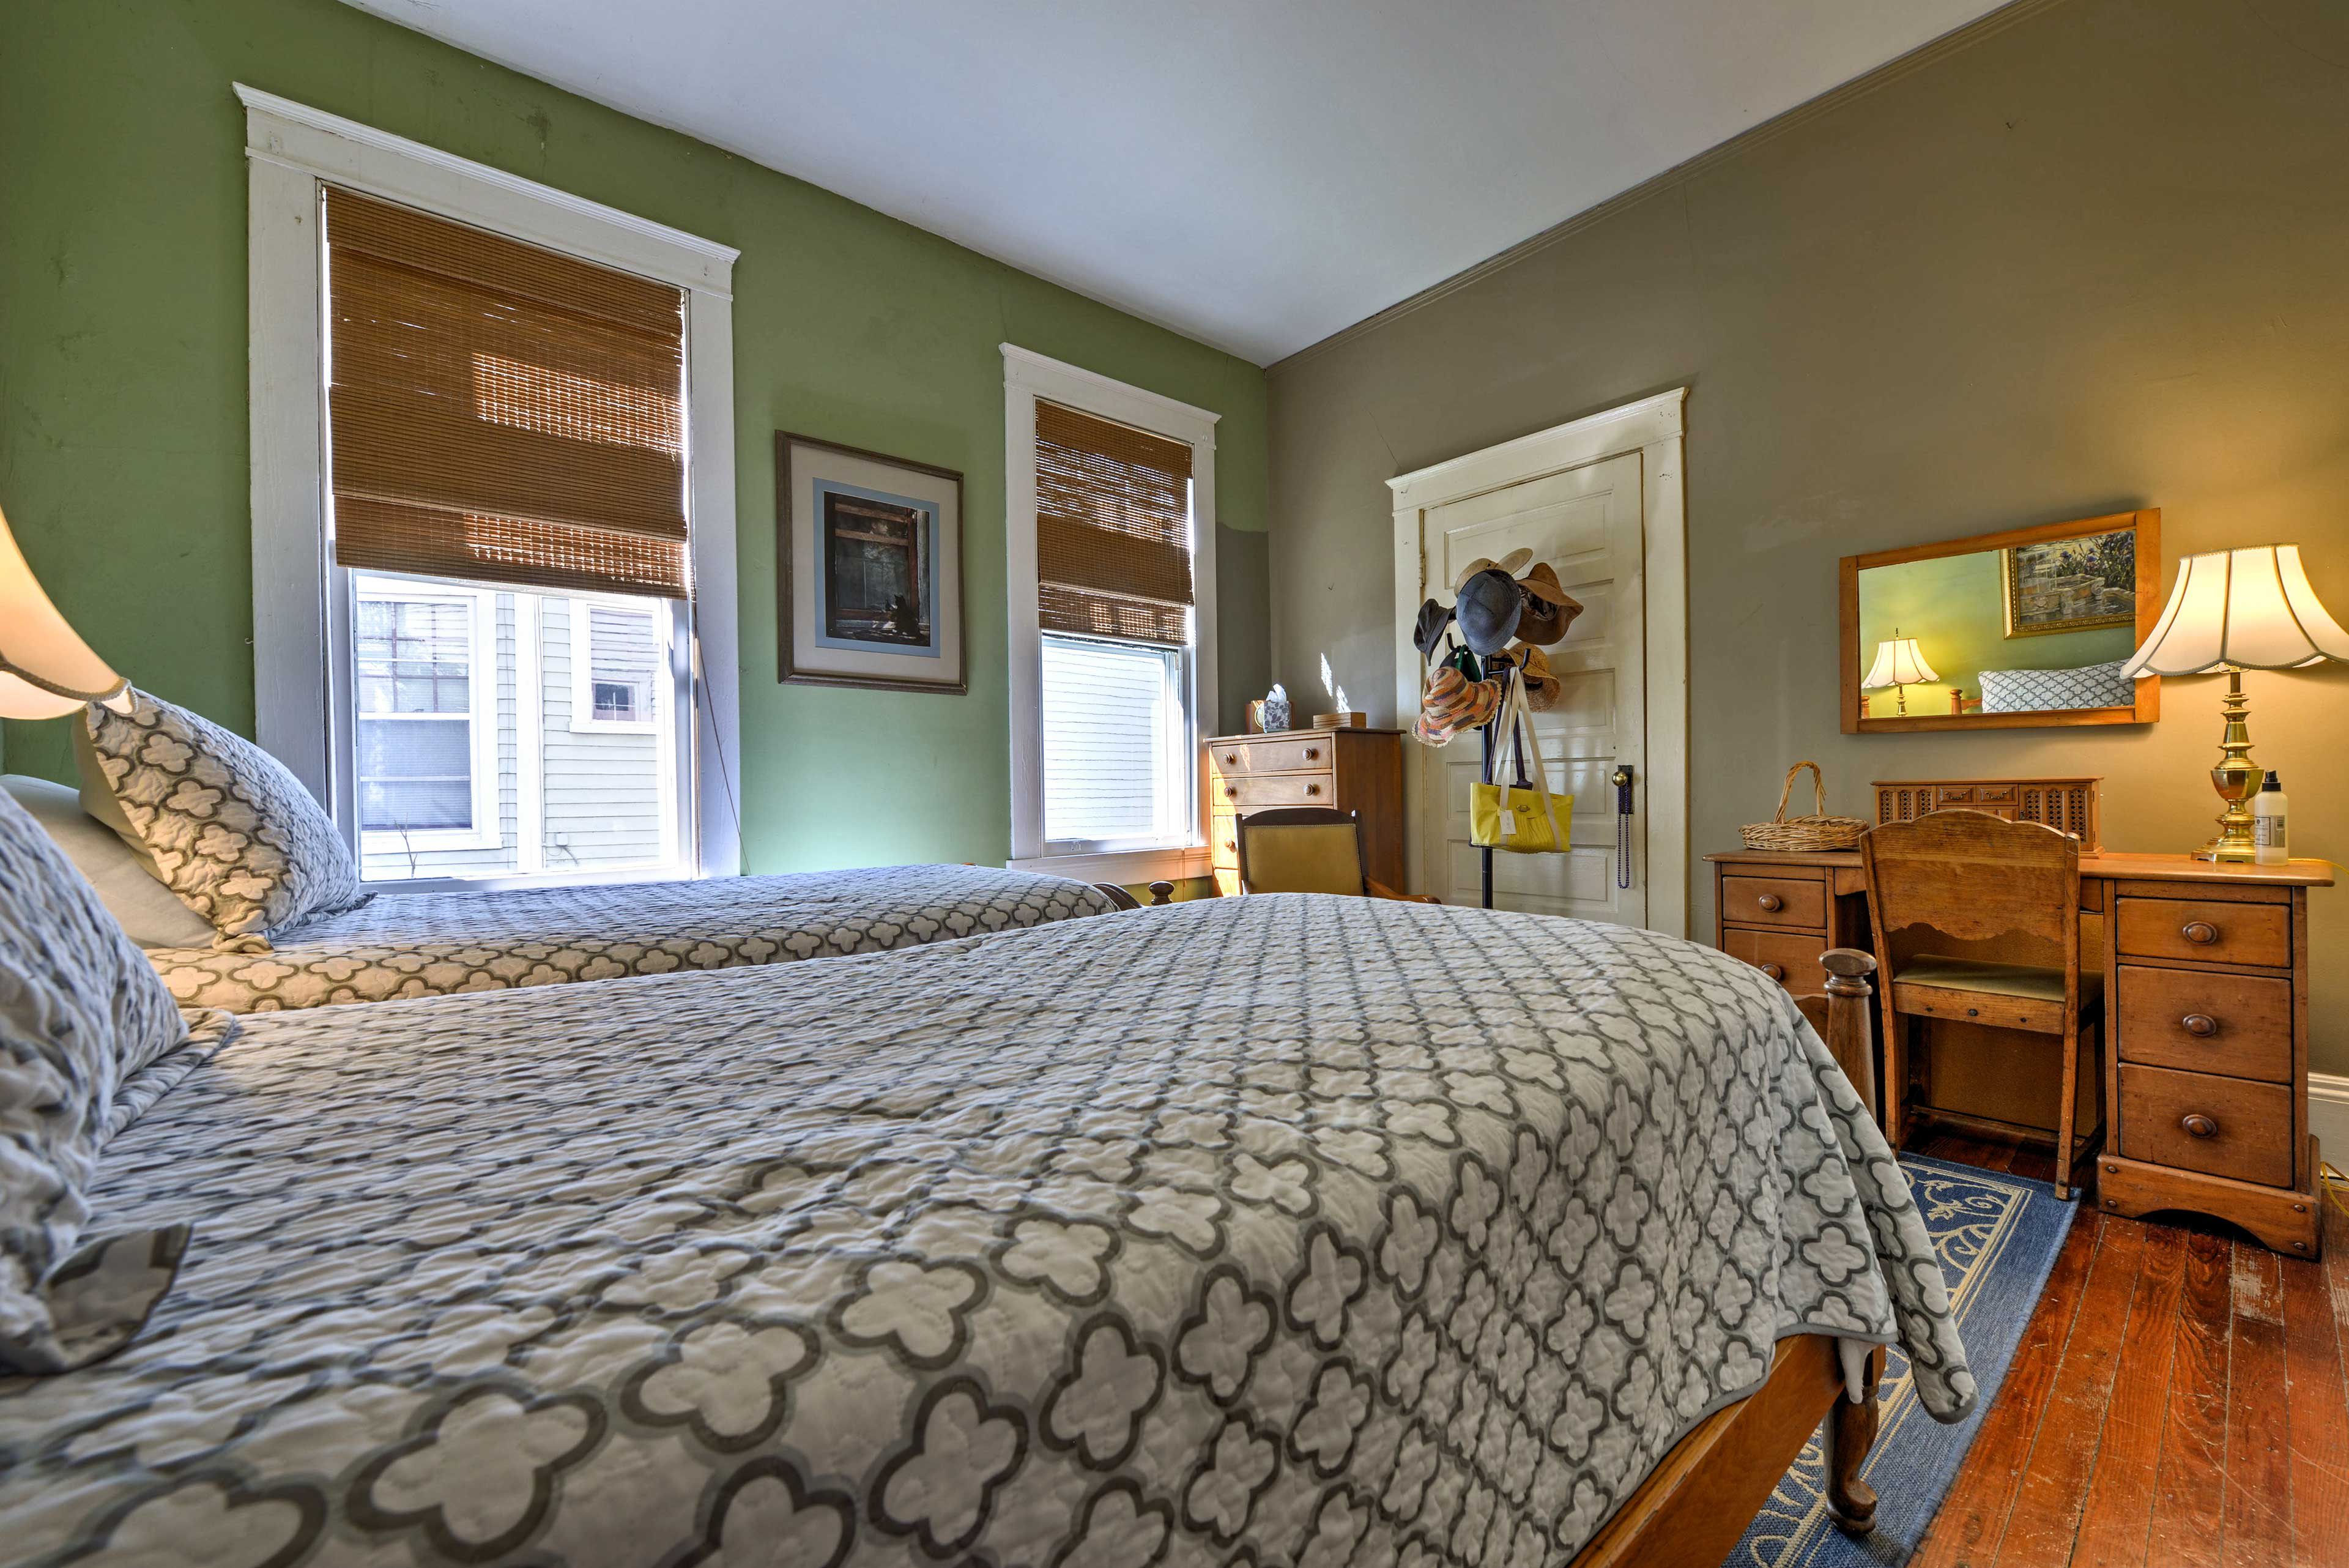 Wake up to natural light brightening the room.